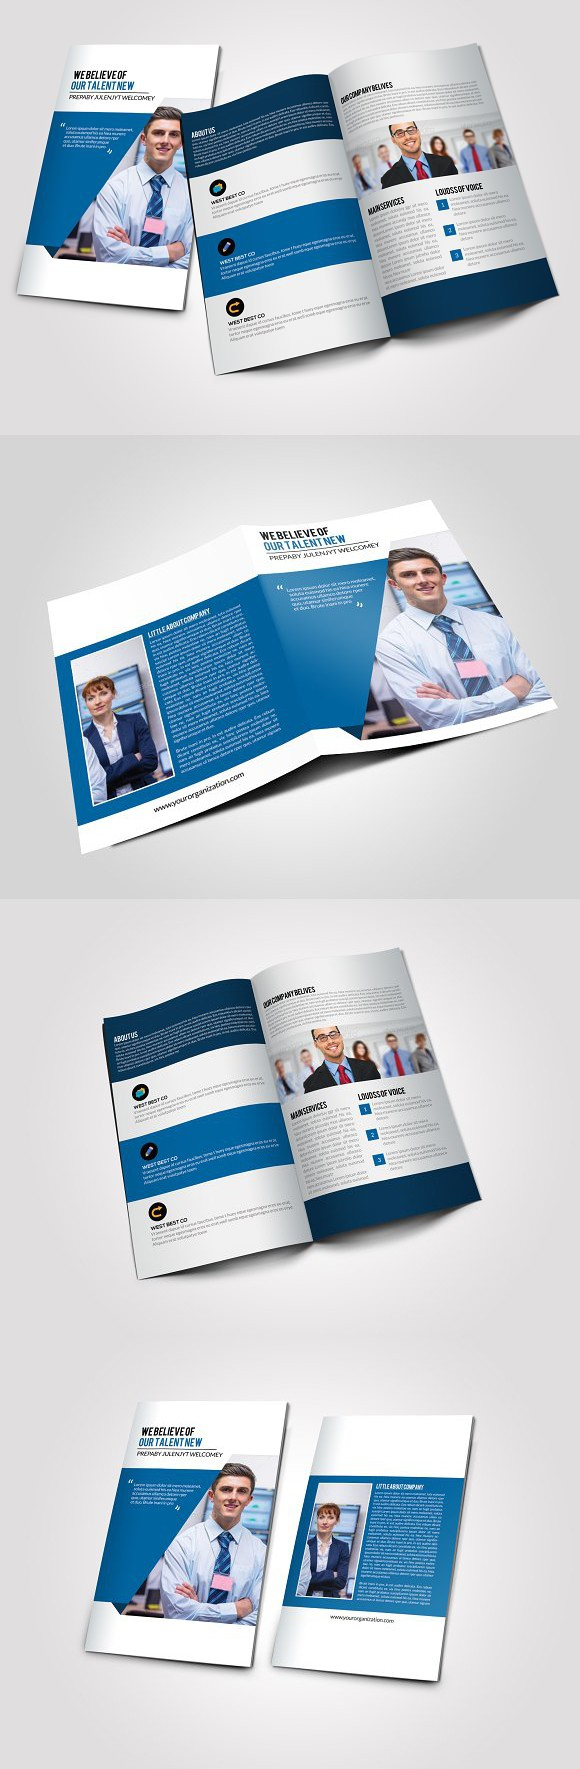 4 pages business bi fold brochure creative business card templates 4 pages business bi fold brochure creative business card templates wajeb Gallery